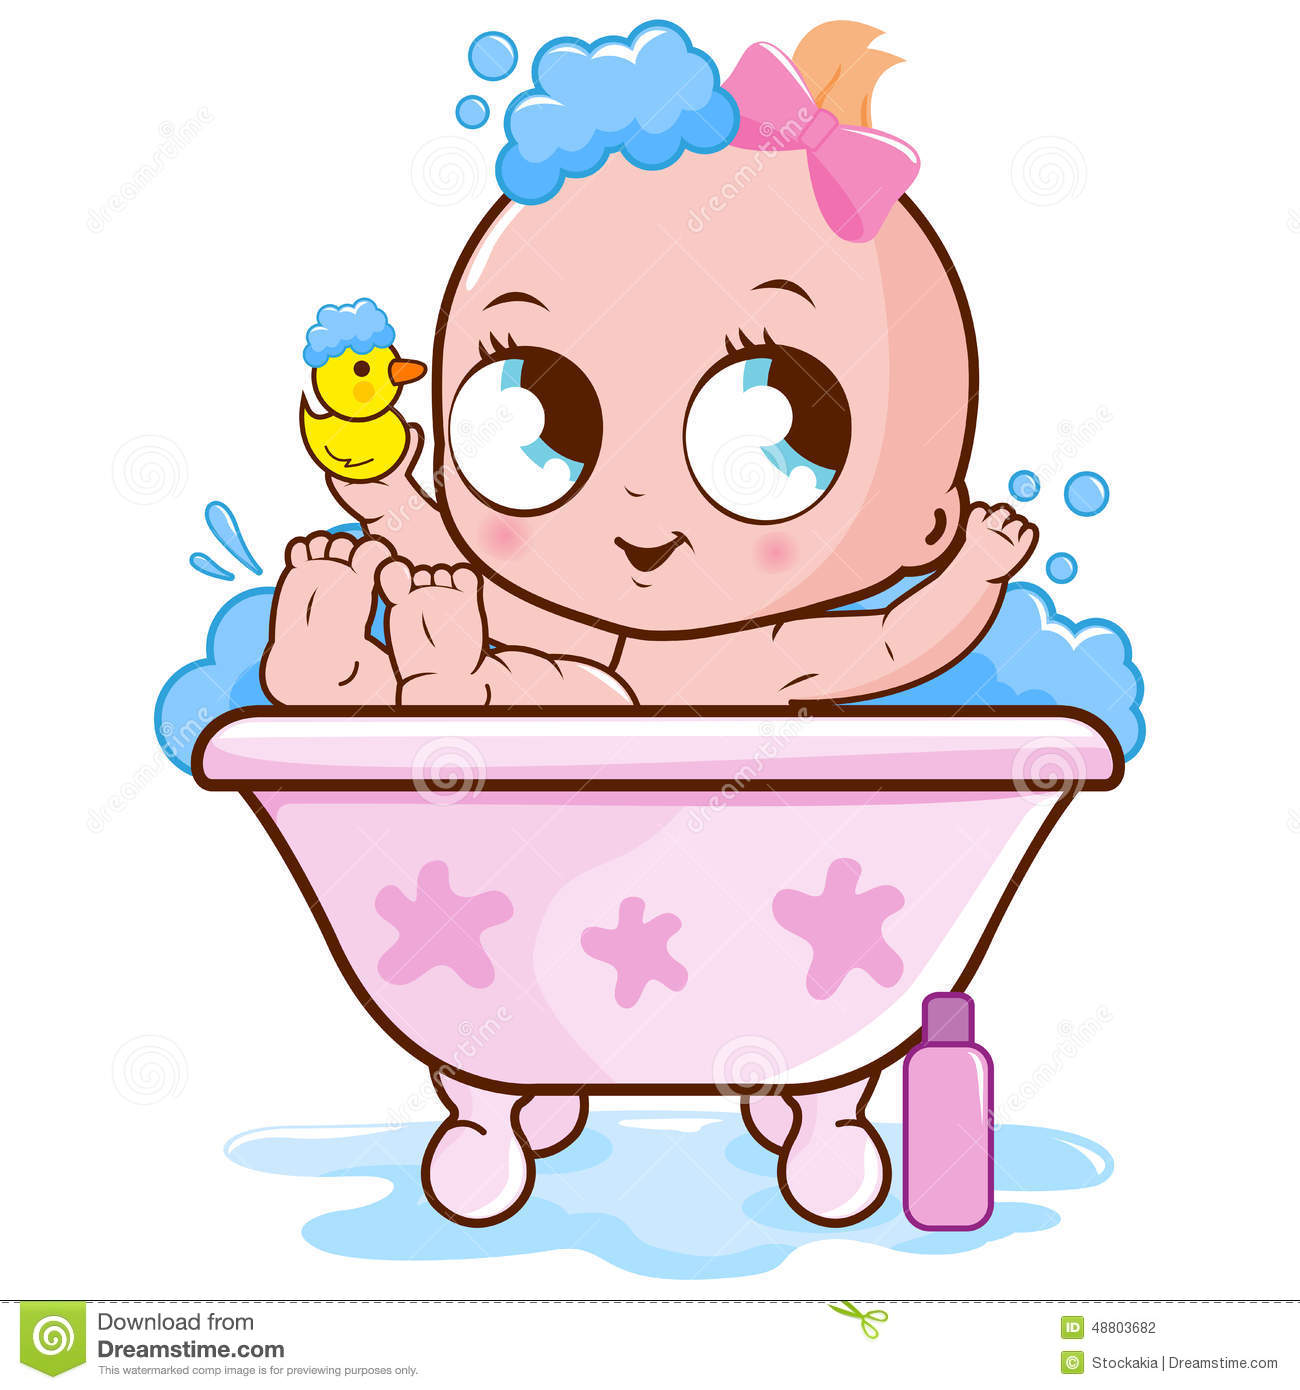 baby girl taking a bath stock vector image 48803682. Black Bedroom Furniture Sets. Home Design Ideas